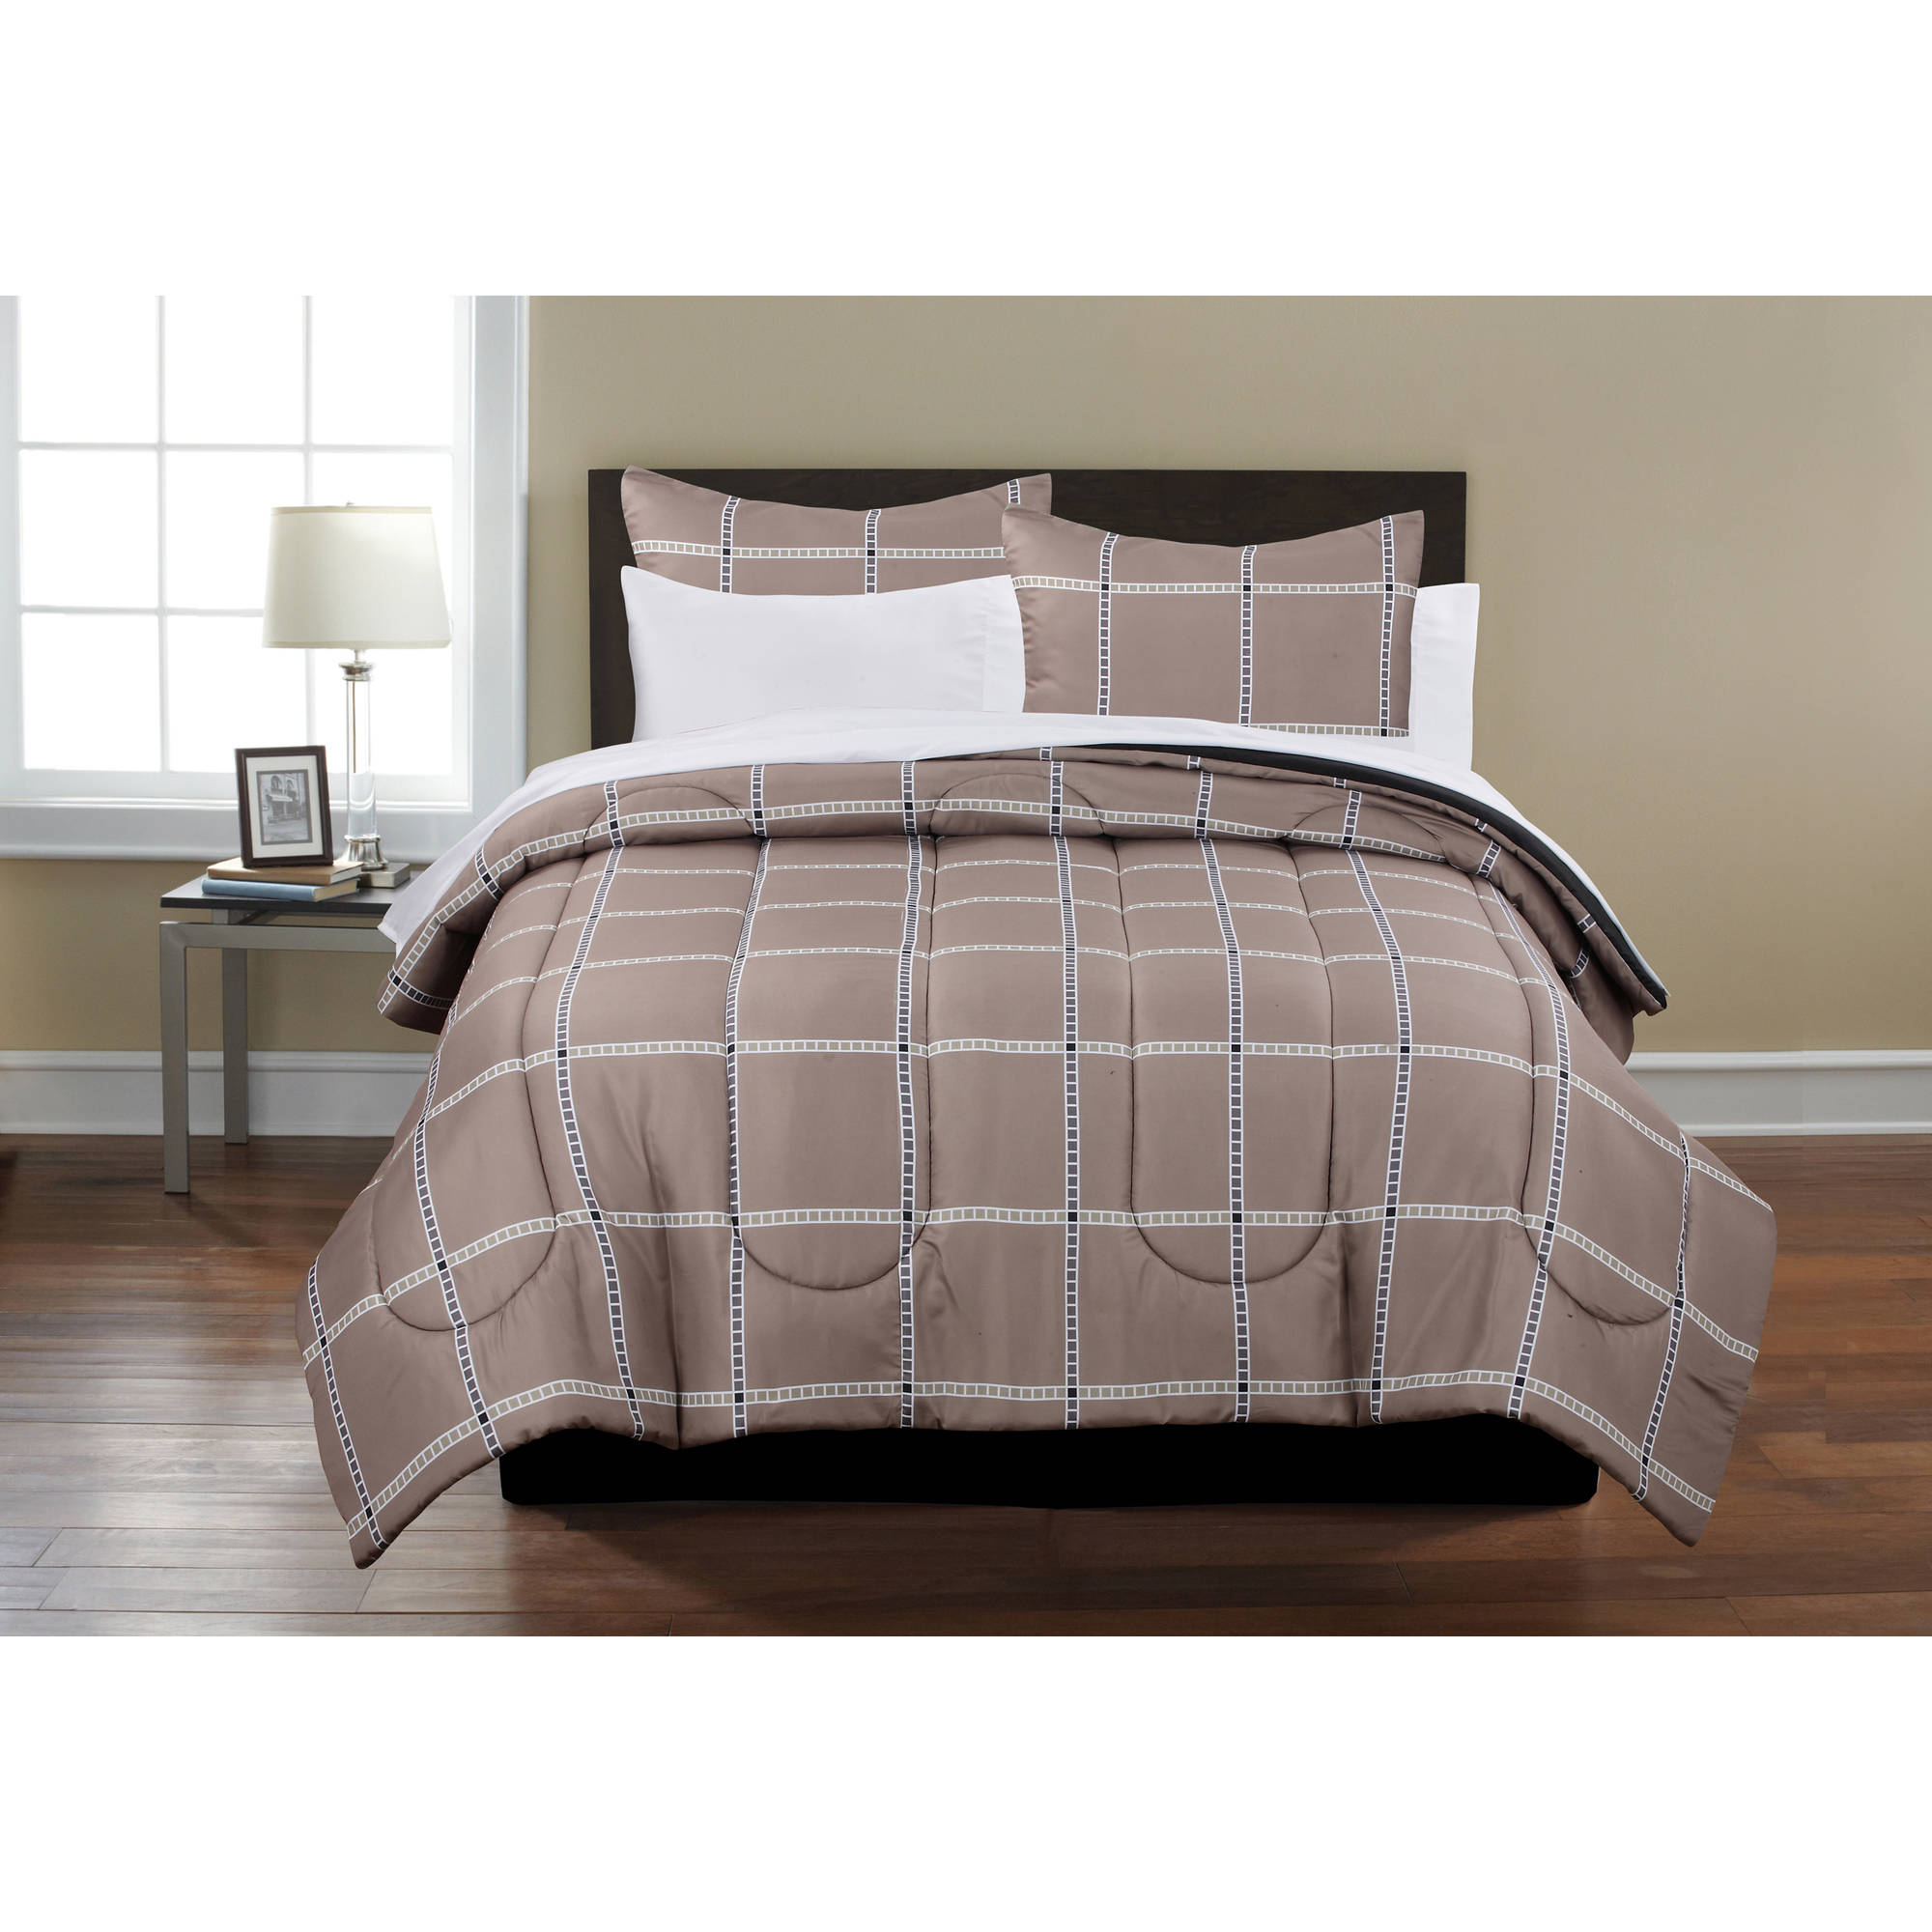 Mainstays Plaid Bedding Bed-In-A-Bag